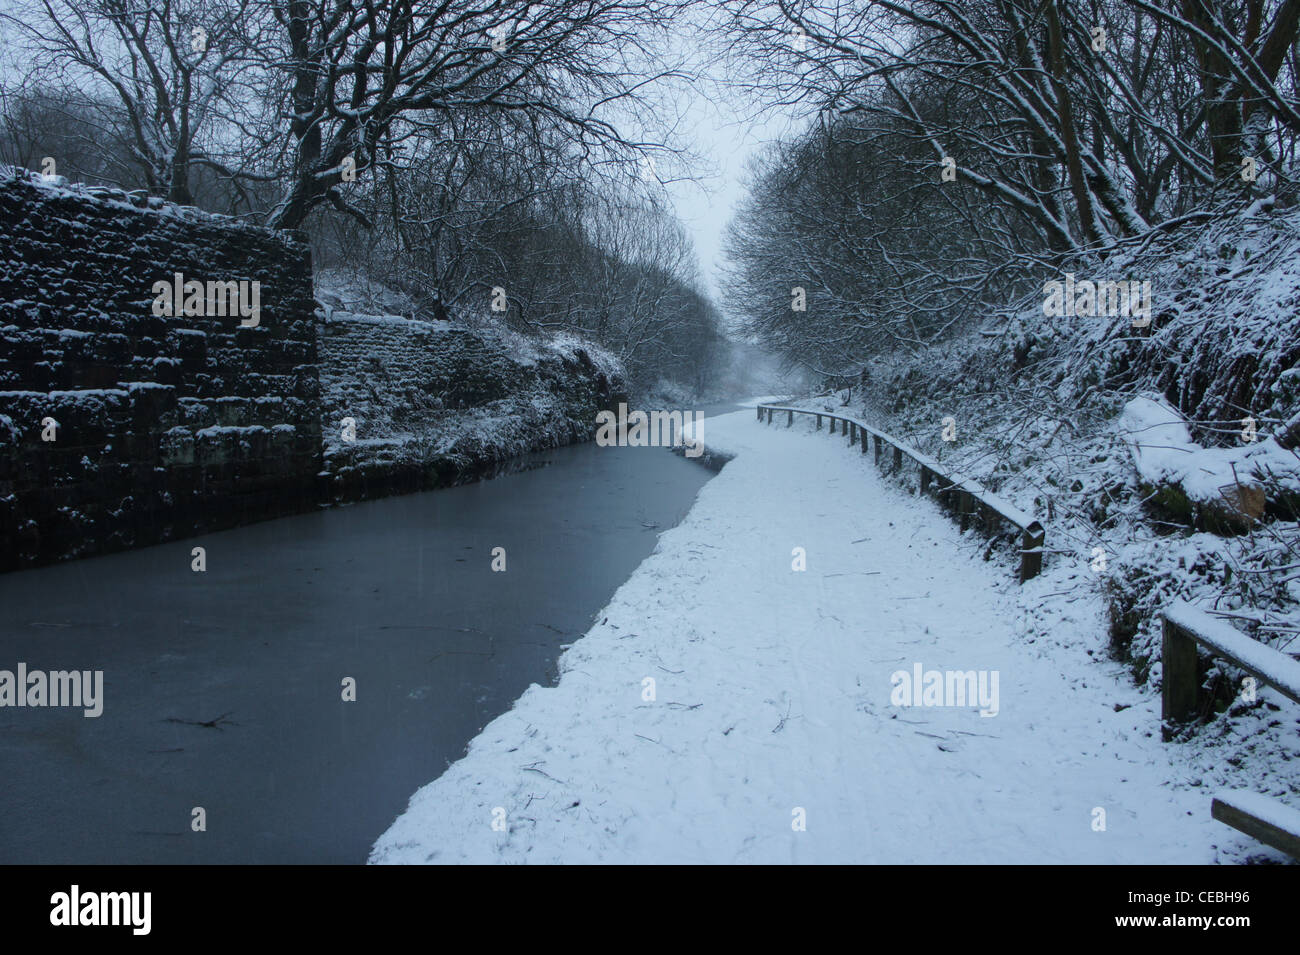 SONY DSC , Walking along the towpath on a snowy day. The canal was iced over and snow was clinging to every surface. - Stock Image